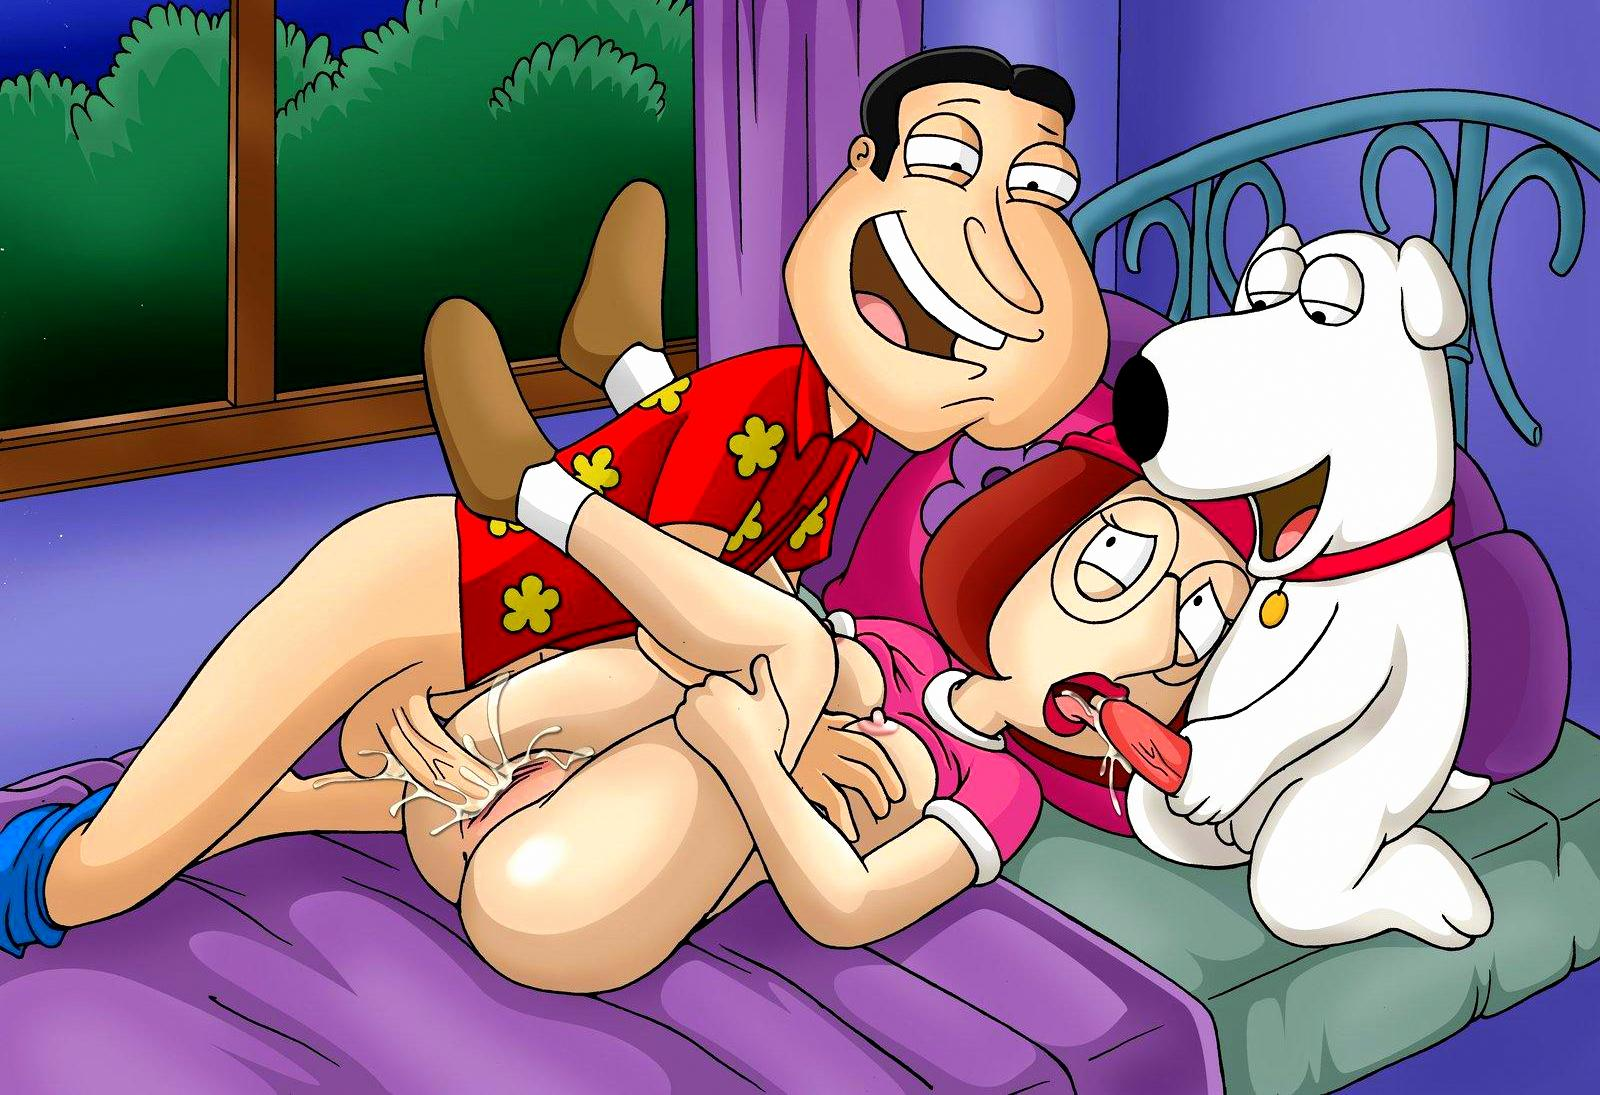 Cartoon naked people having sex naked pornstars